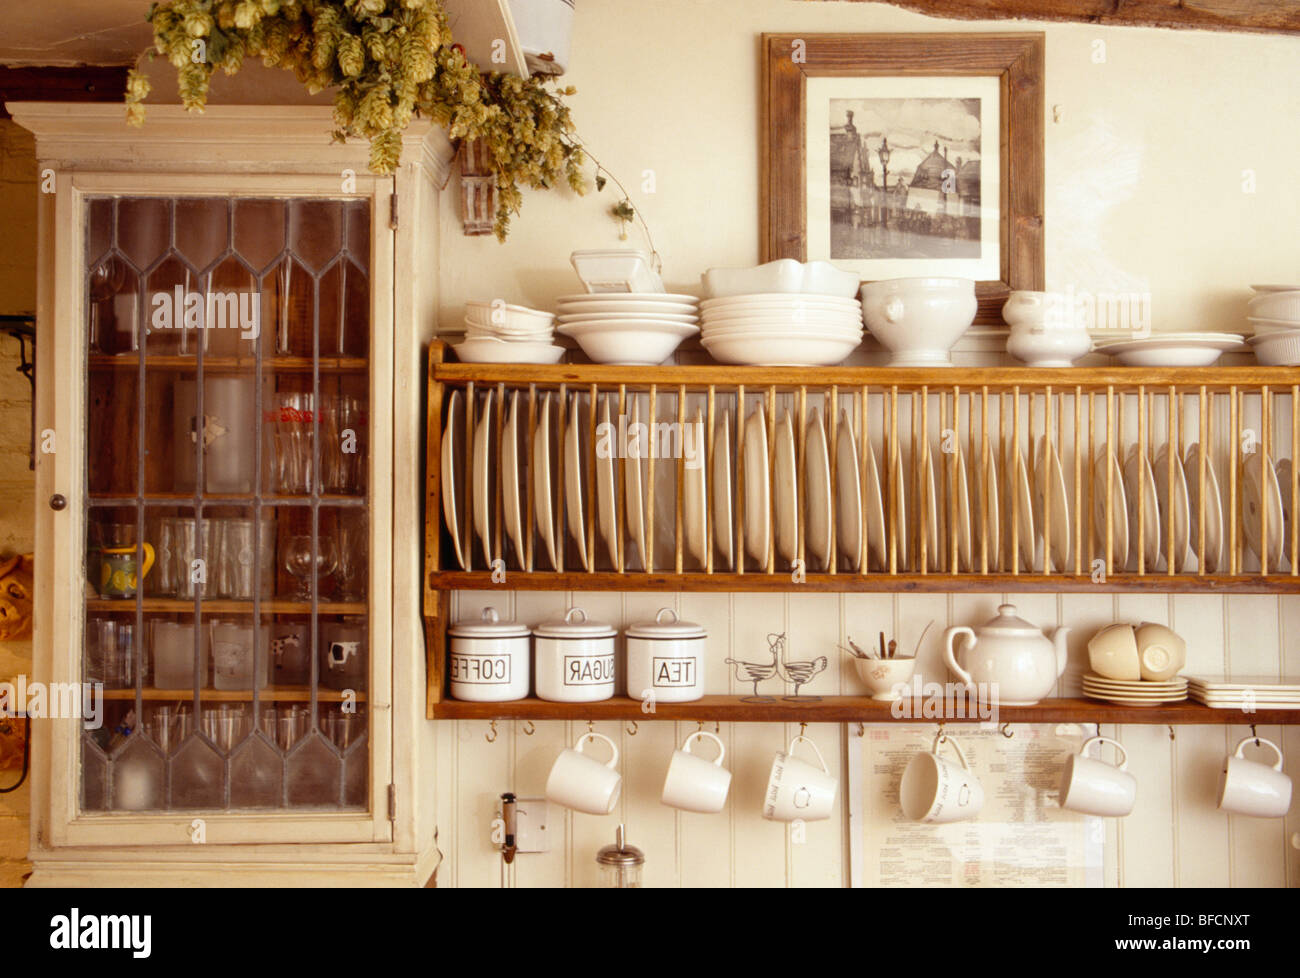 Wooden Wall Plate Racks Kitchen